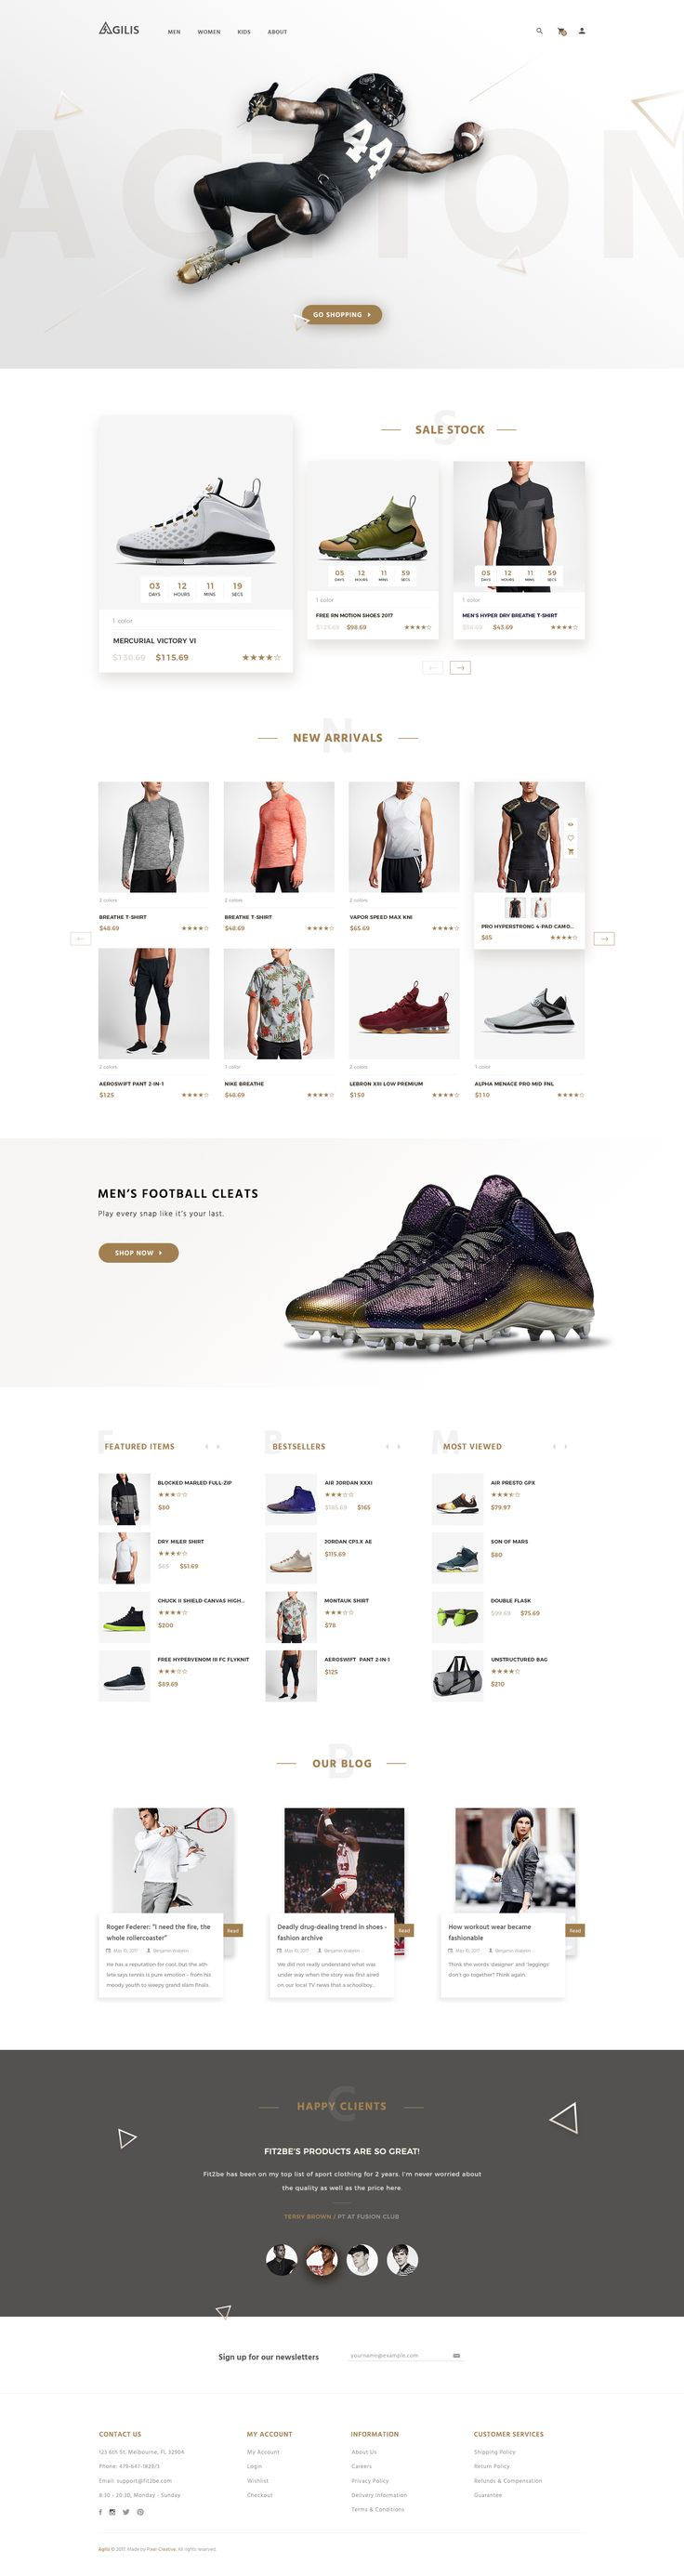 Agilis_Sport Good Store - PSD Template #ecommerce #fashion #shoe • Download ➝ https://themeforest.net/item/agilis_sport-good-store-psd-template/20194323?ref=pxcr - Love a good success story? Learn how I went from zero to 1 million in sales in 5 months with an e-commerce st